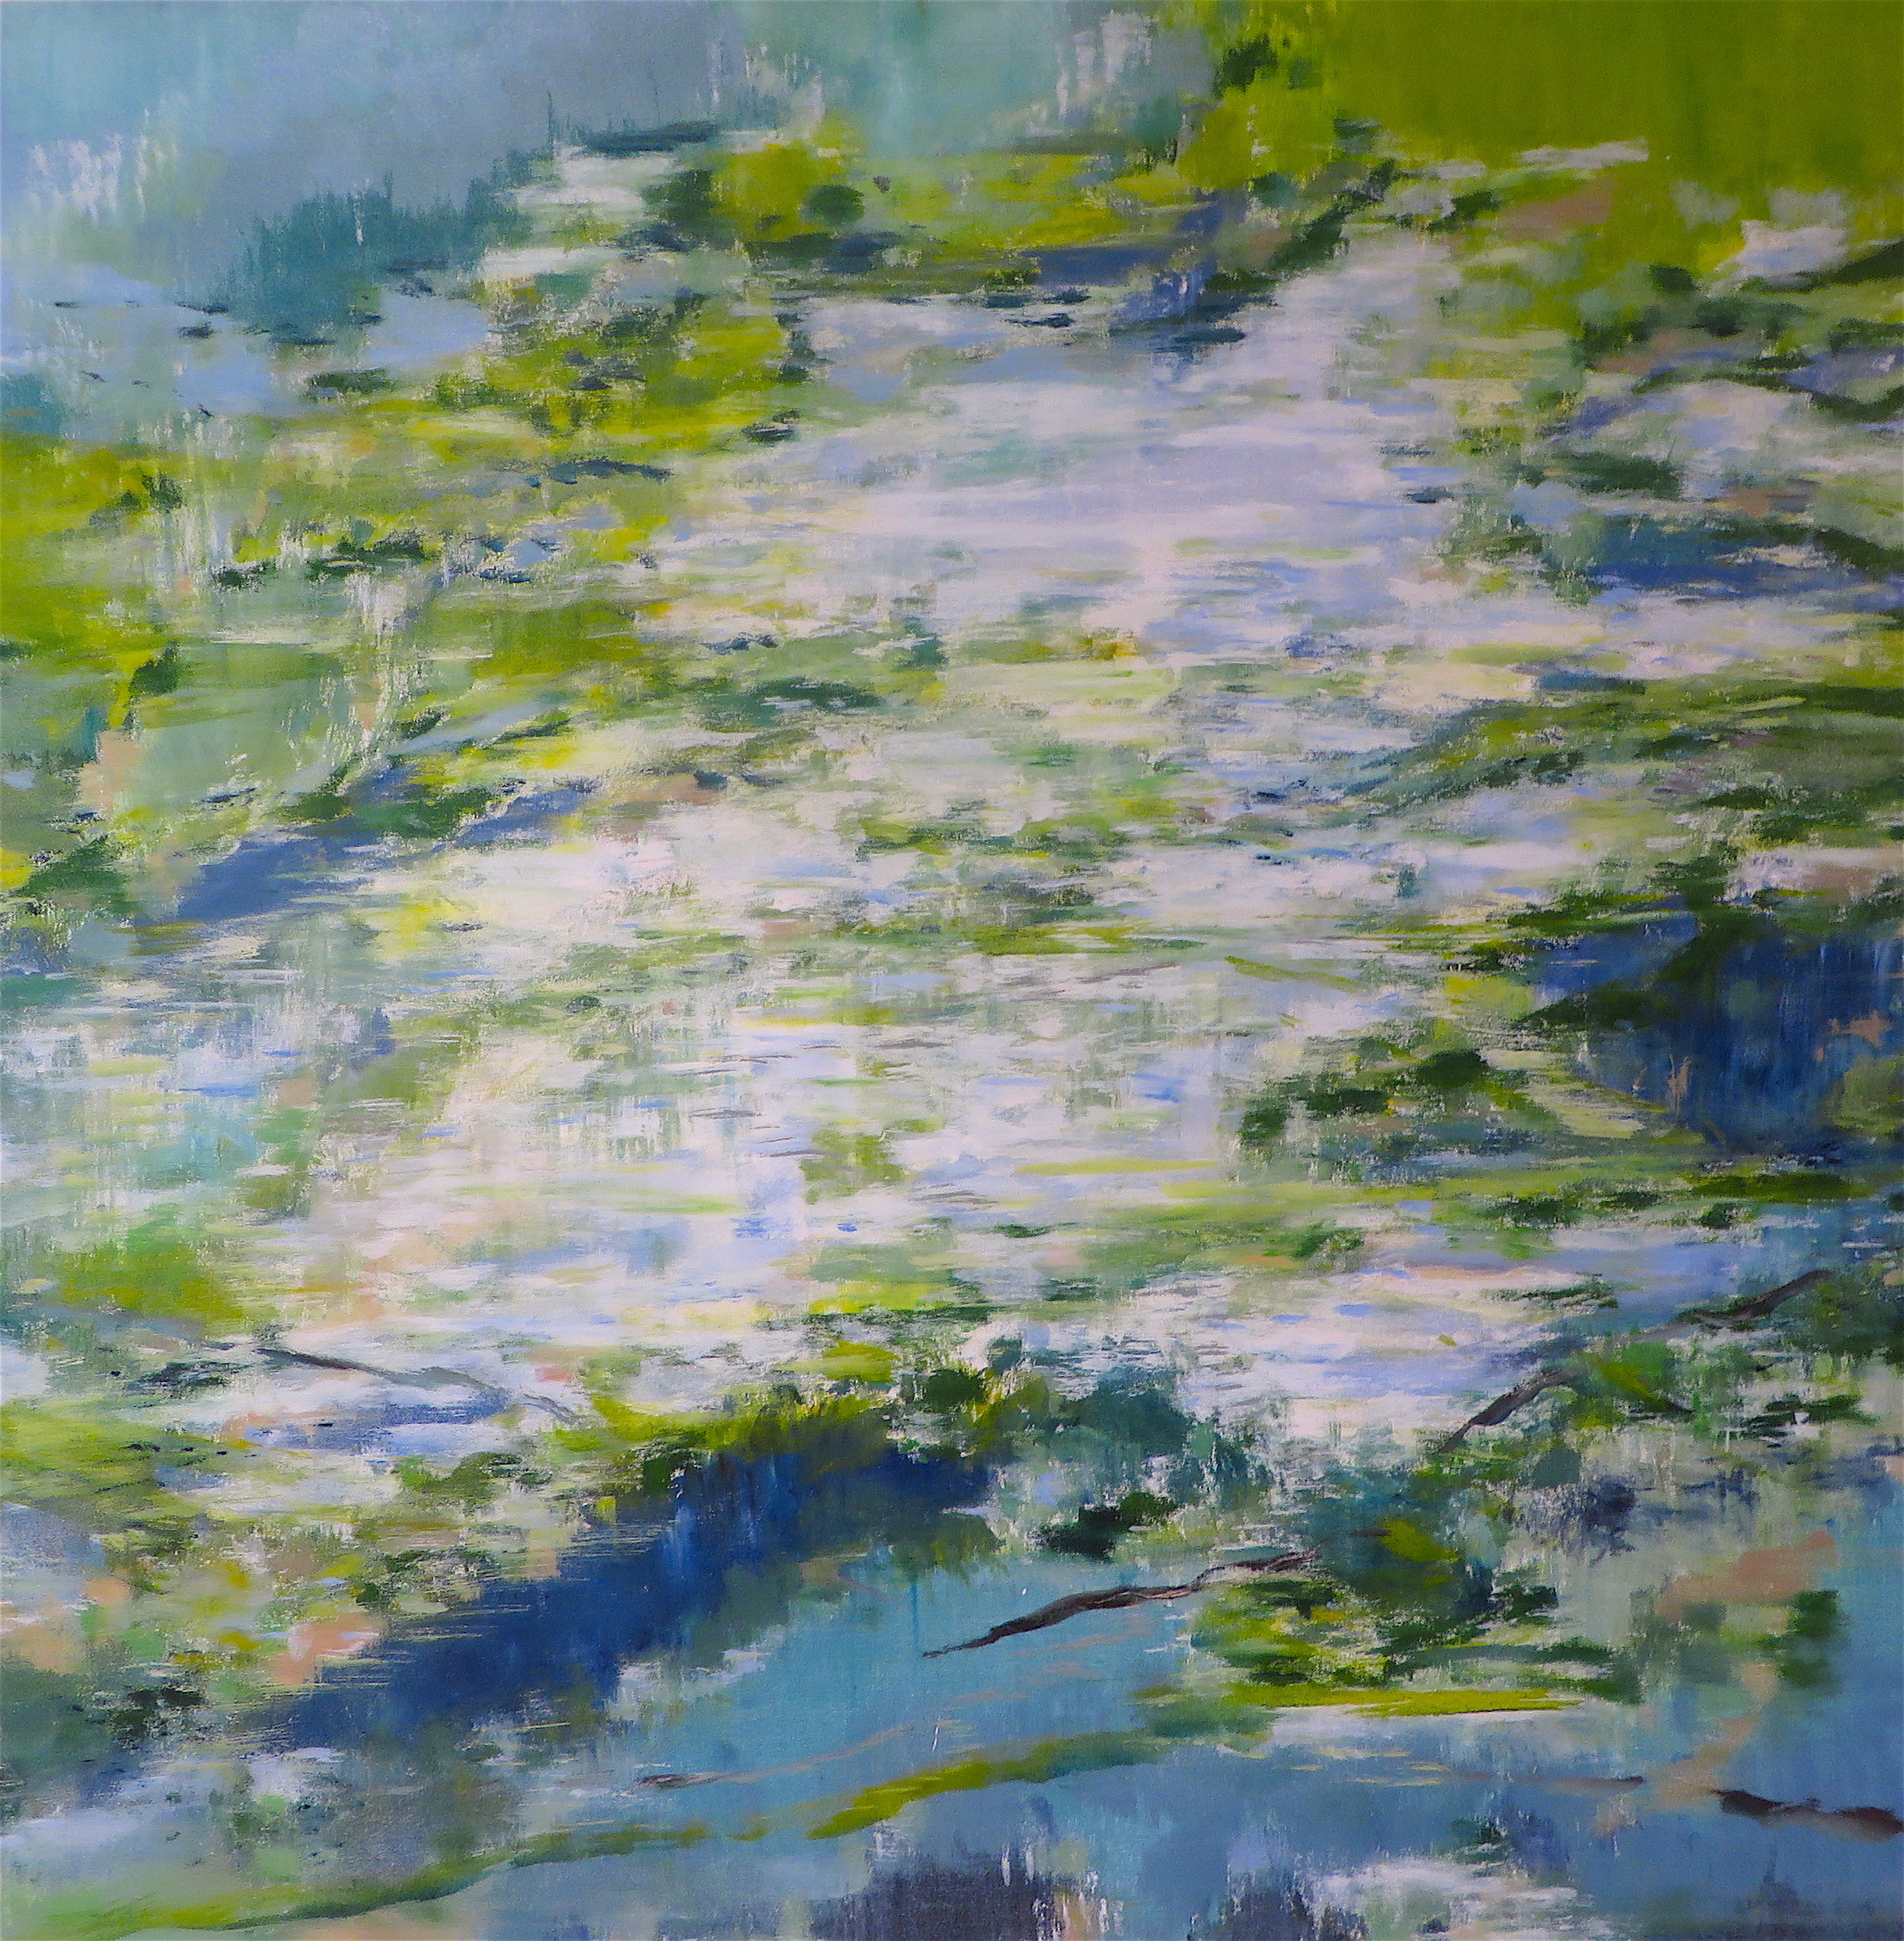 Earth Green Water Blue, 2012